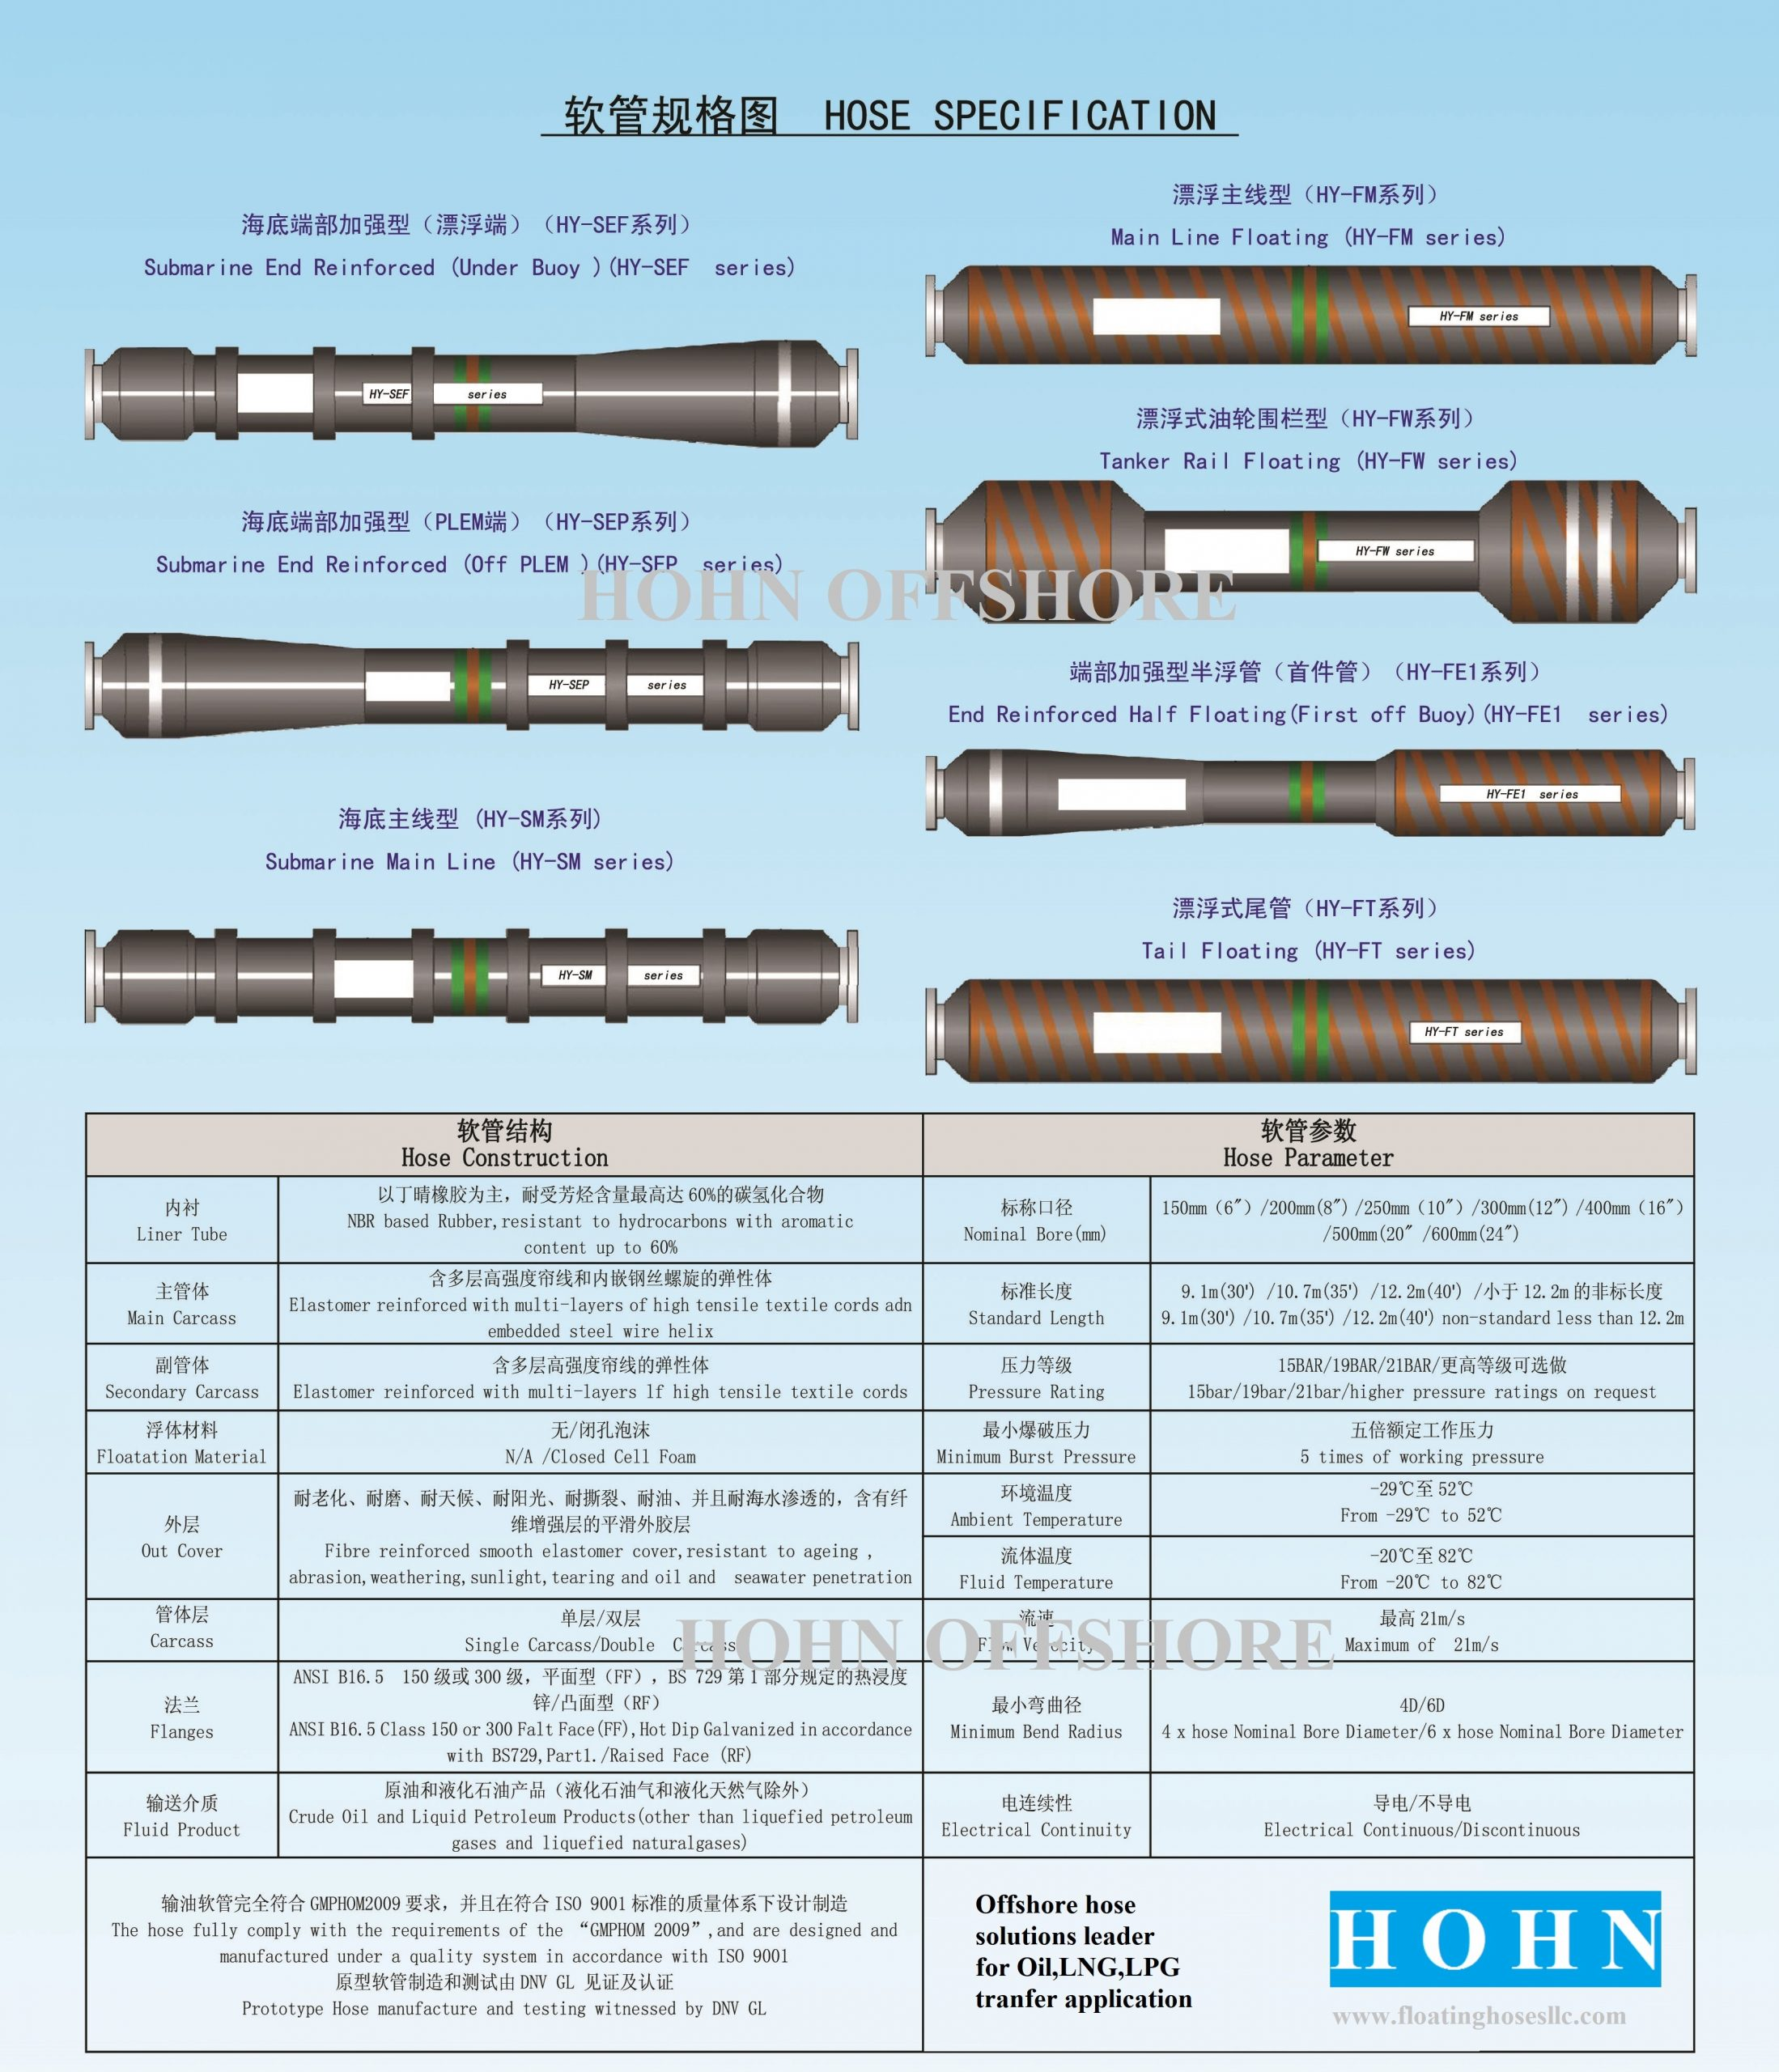 Single Point Mooring OCIMF 2009 Floating and Submarine hoses for oil transfer